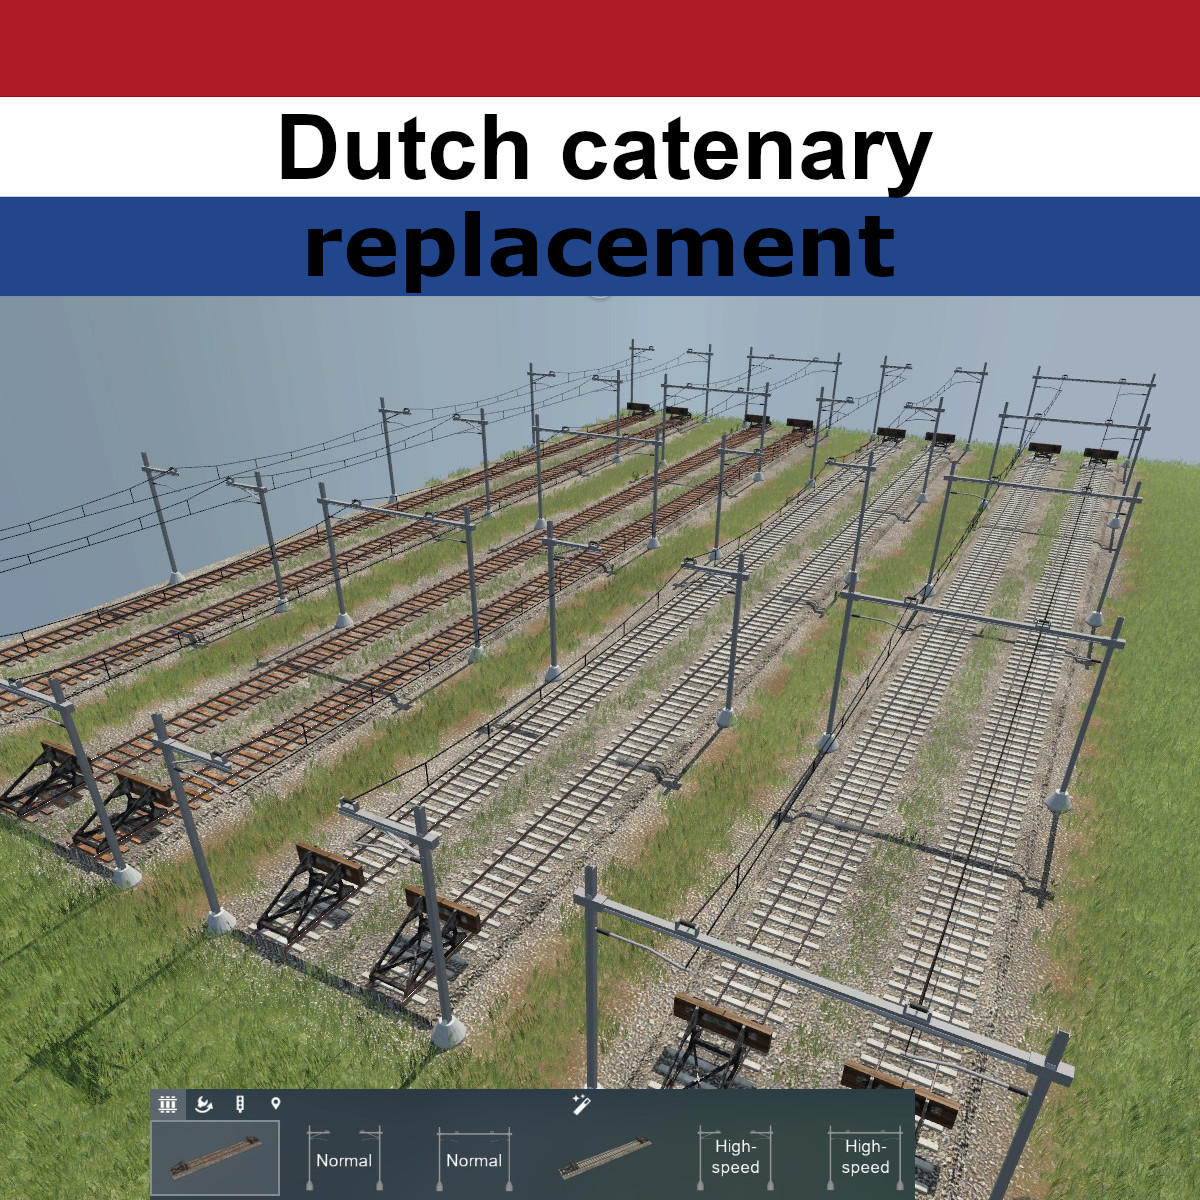 Transport Fever 2 - Dutch Catenary (Replacement)